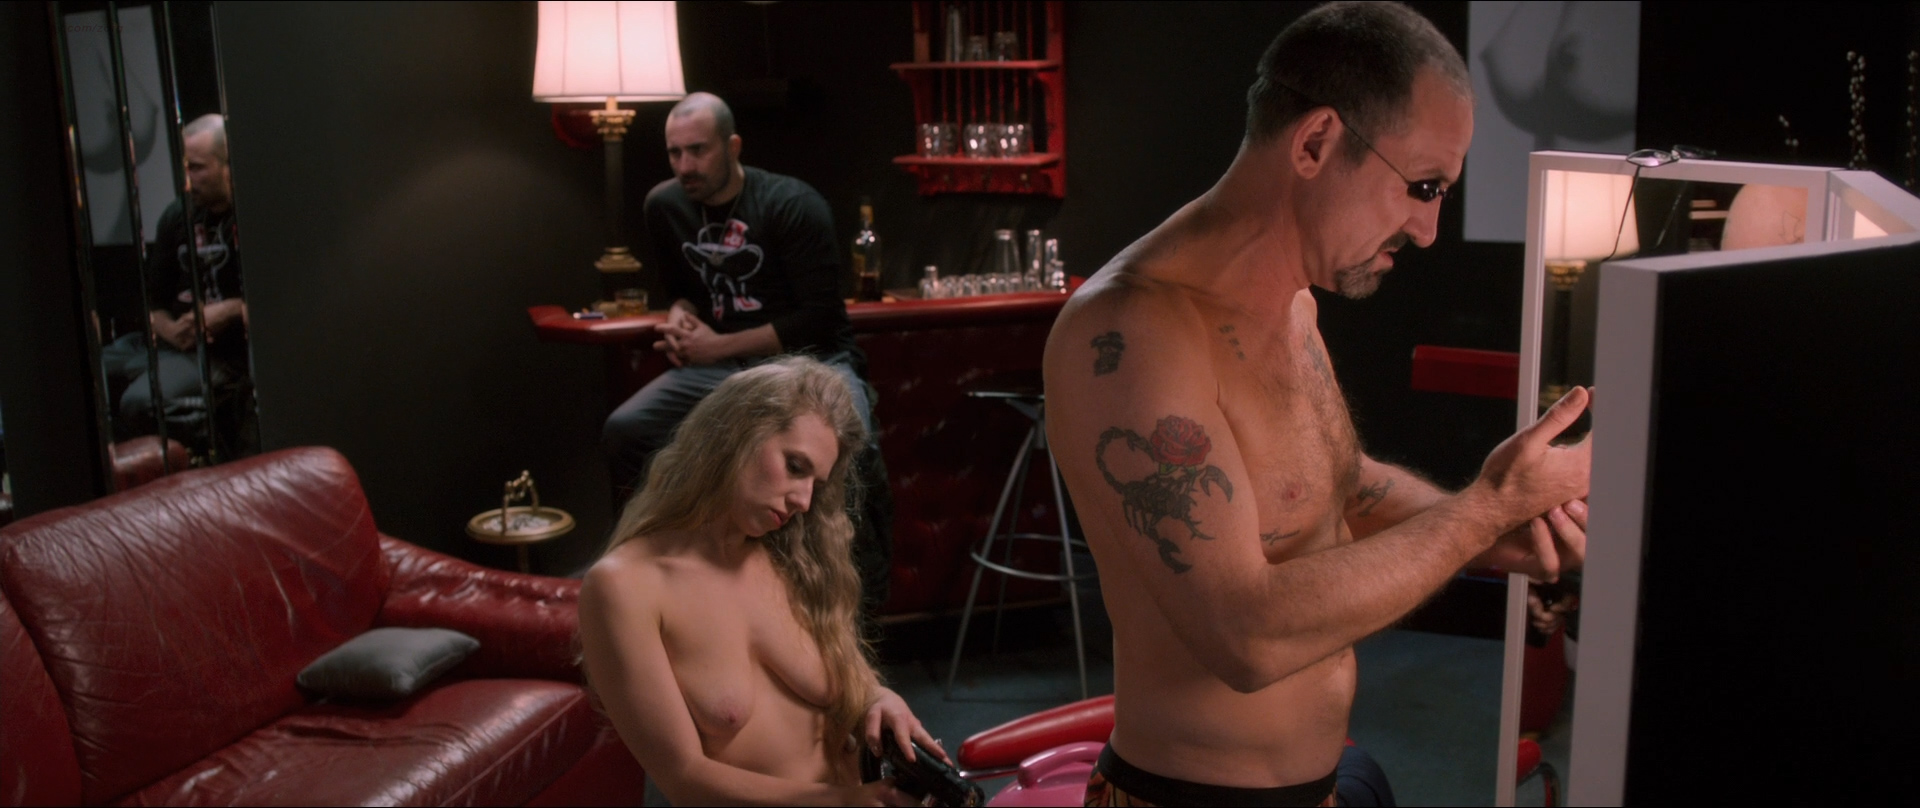 Leighton meester nude photo and pussy slip moment